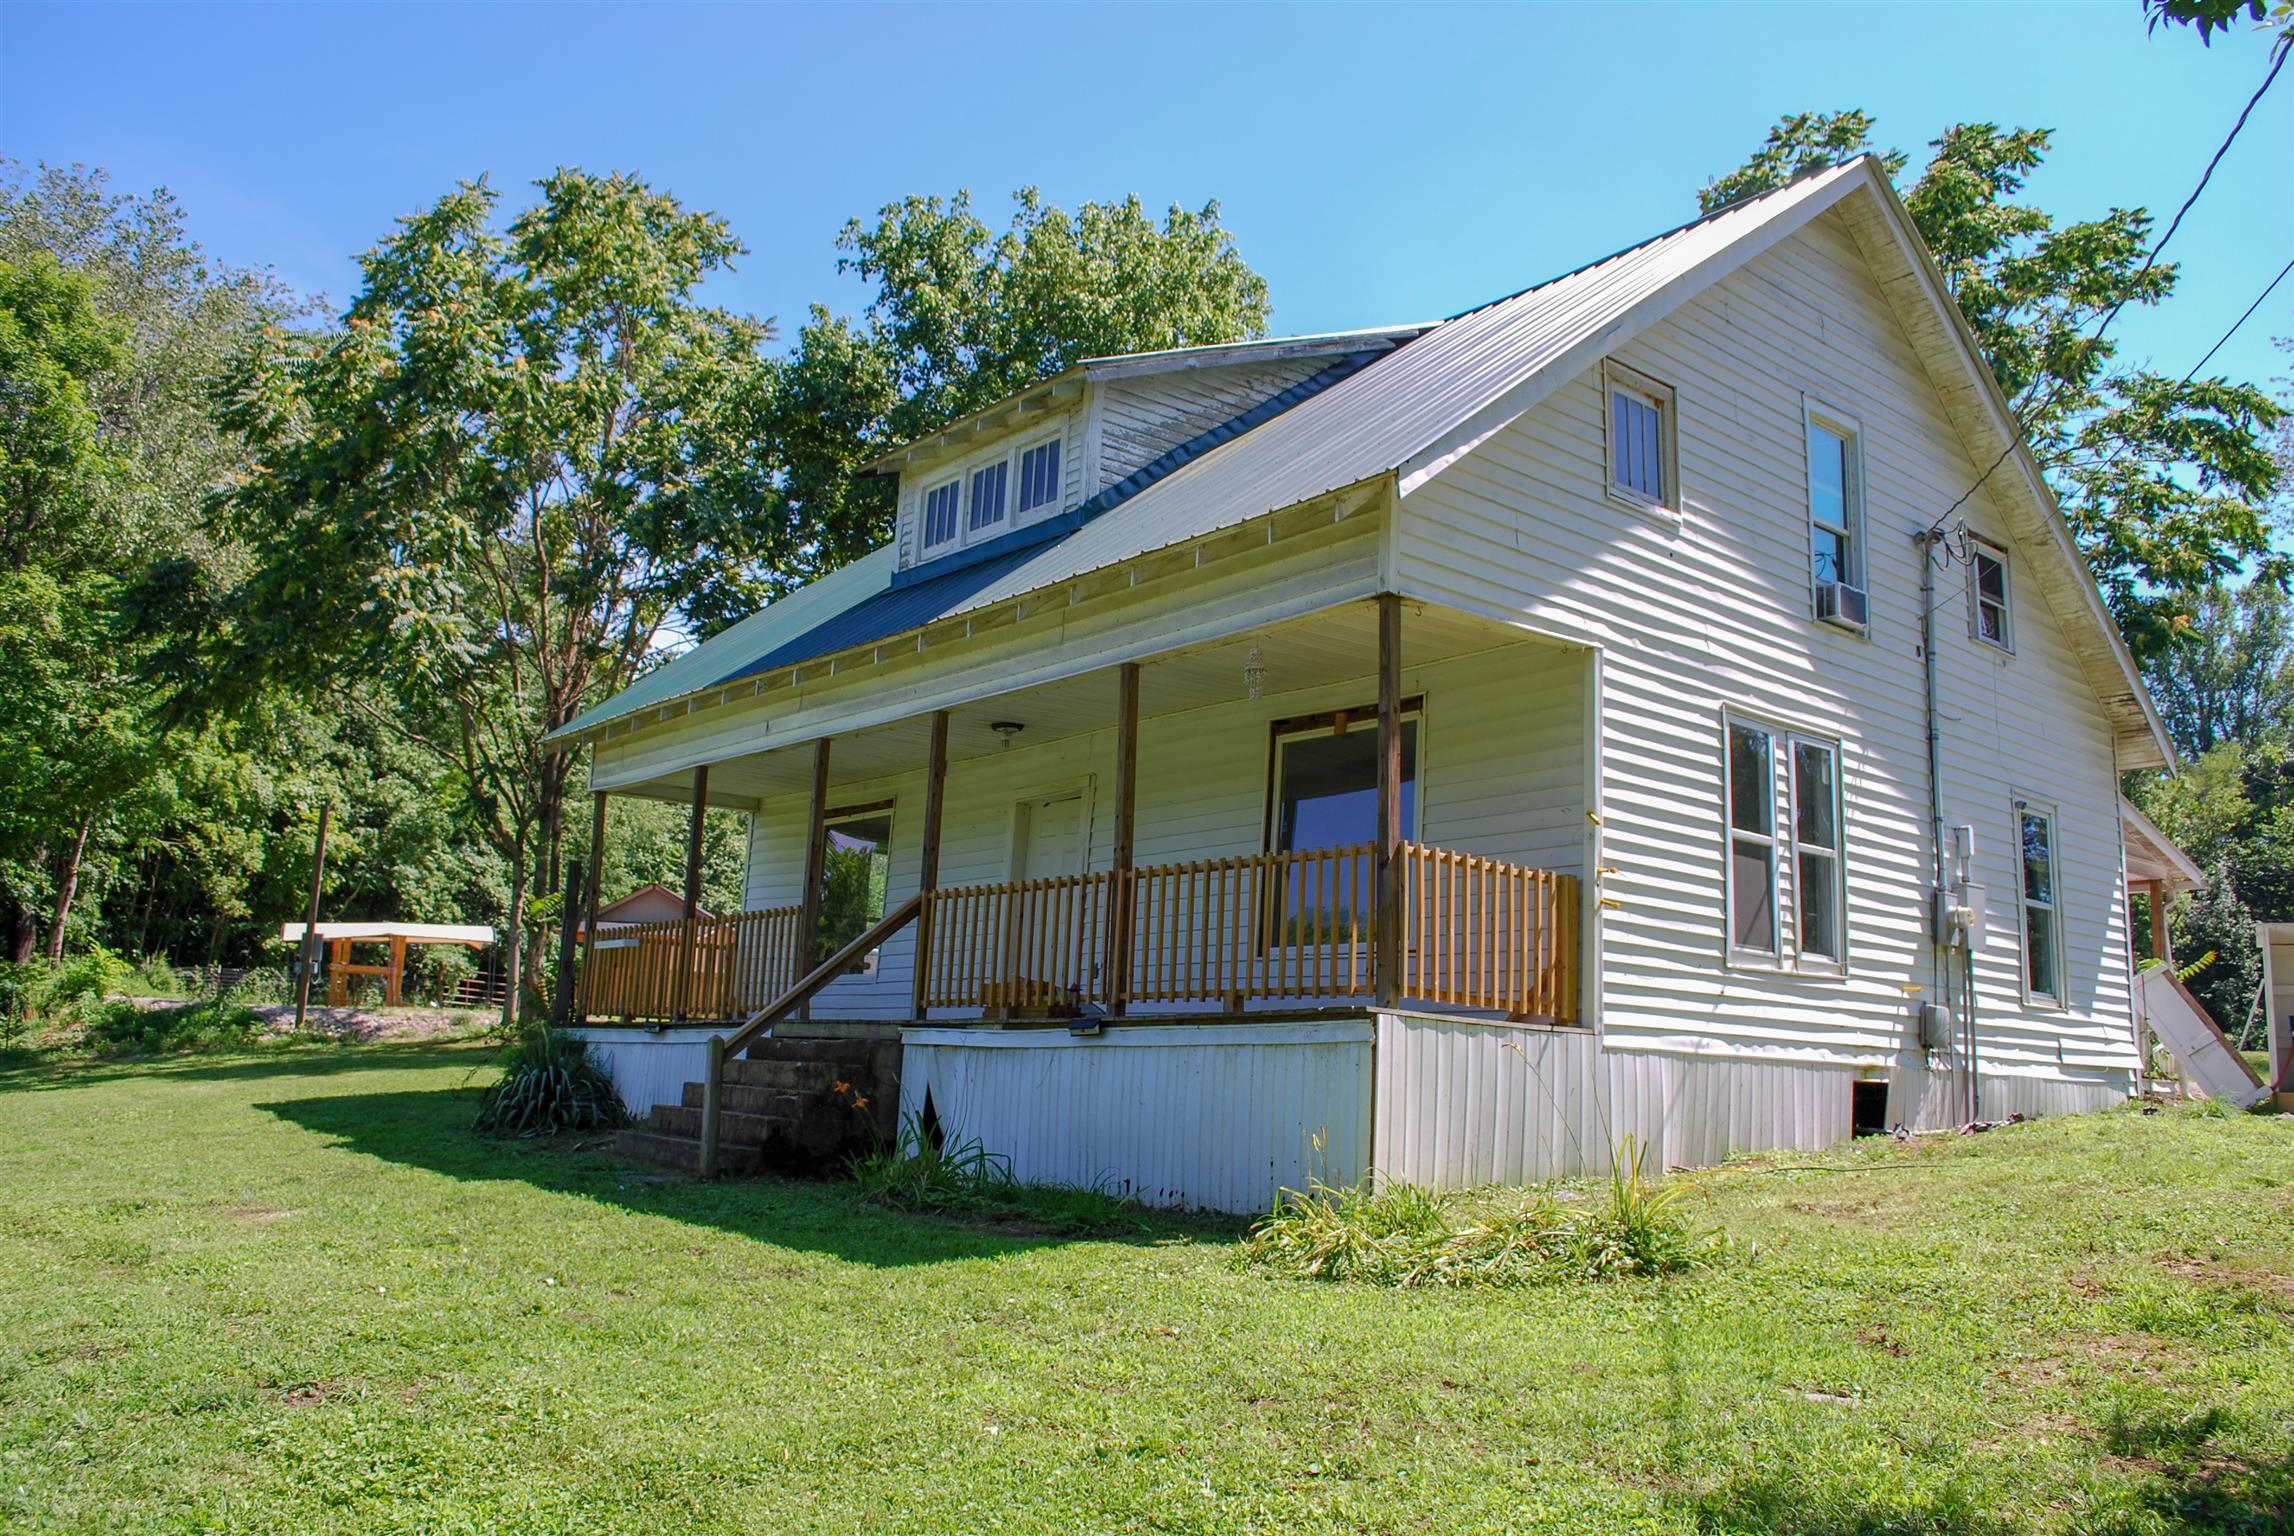 245 Old Lake Rd, Red Boiling Springs, TN 37150 - Red Boiling Springs, TN real estate listing